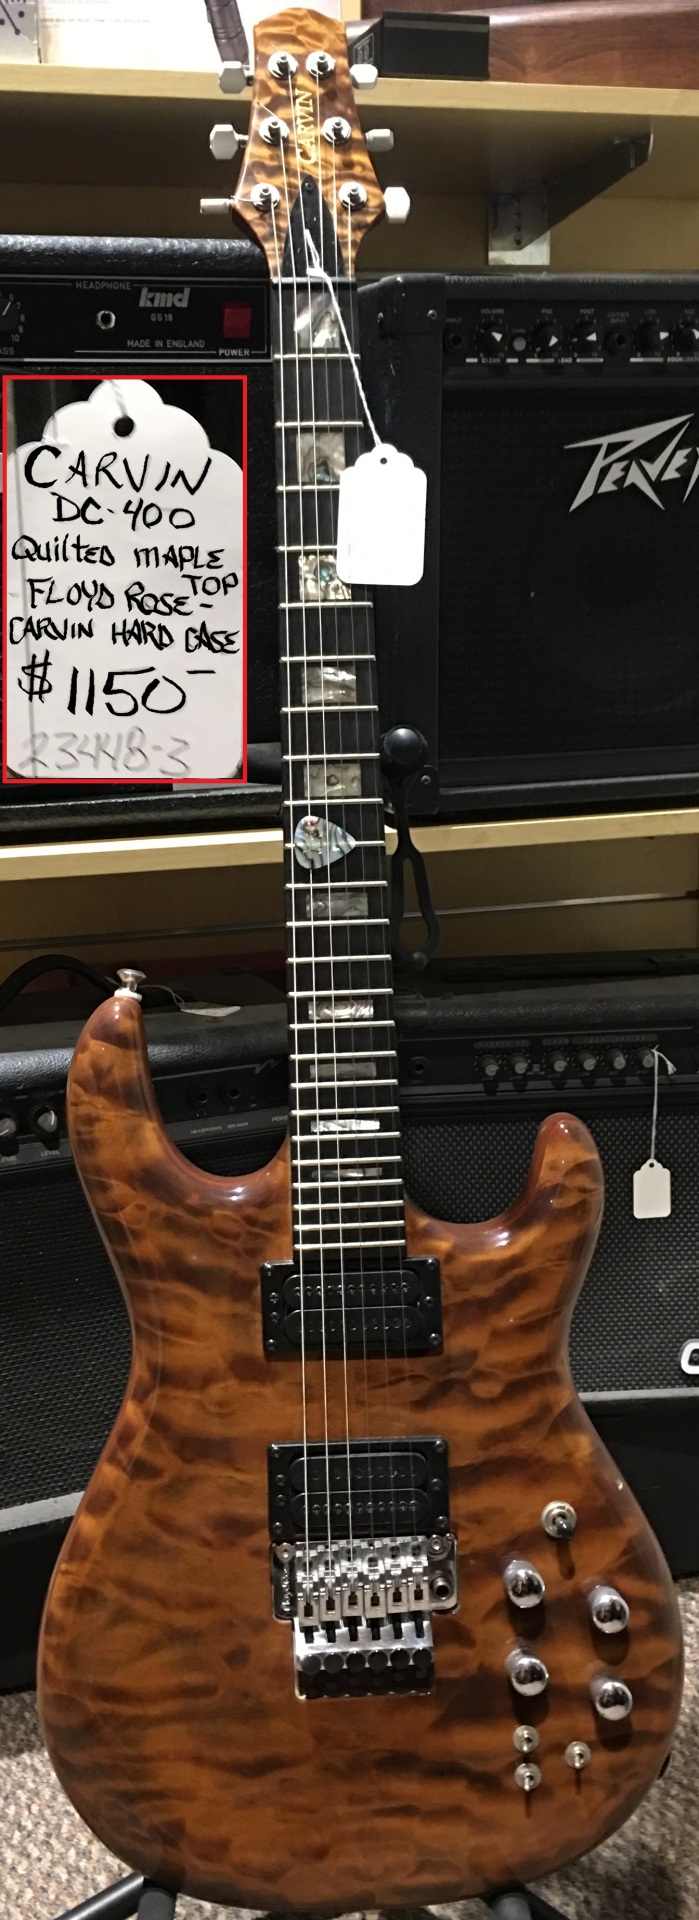 CARVIN DC 400